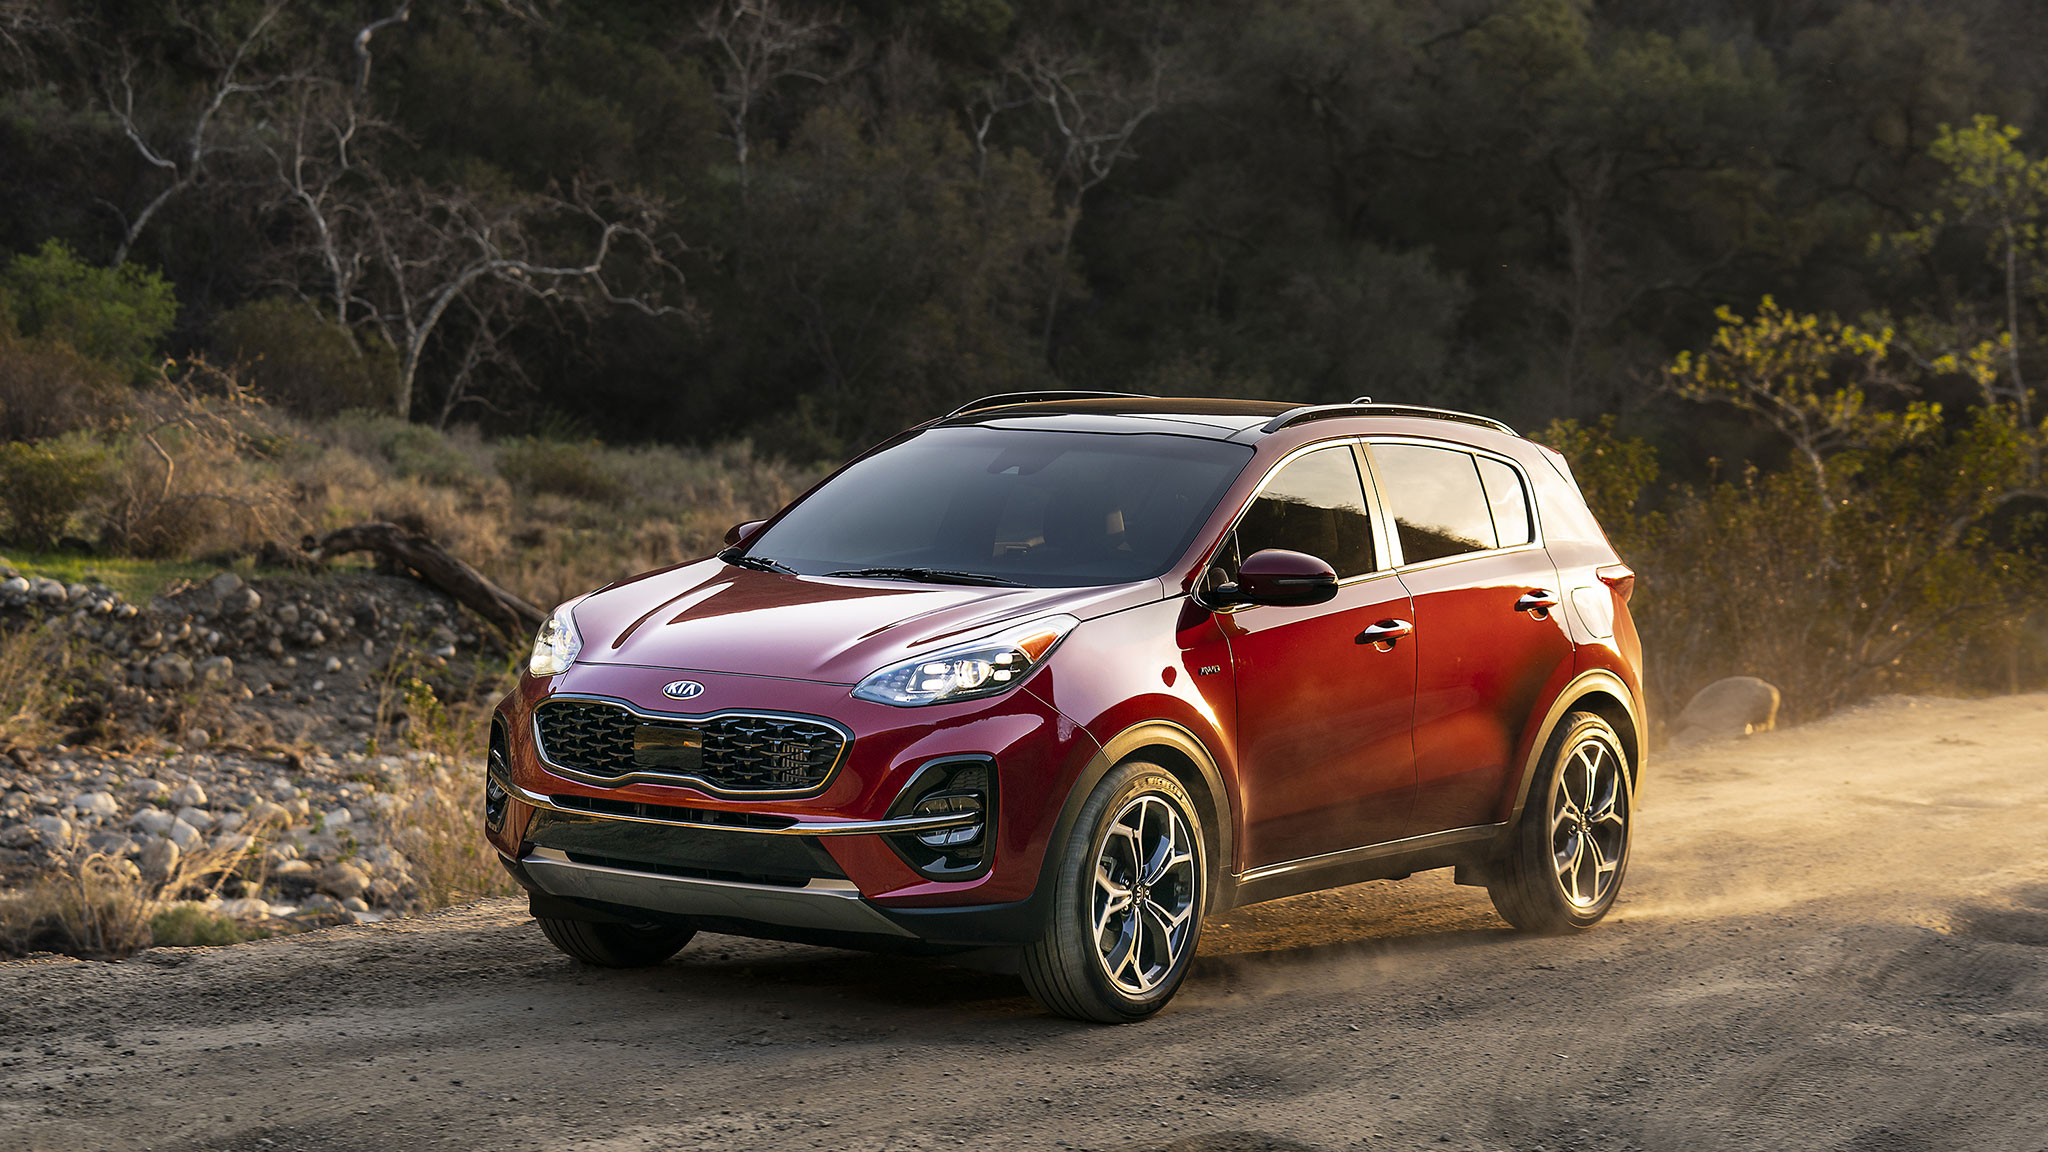 Chevy Small Suv >> The 2020 Kia Sportage Is Crazy (Just Kidding, It's a Mild ...